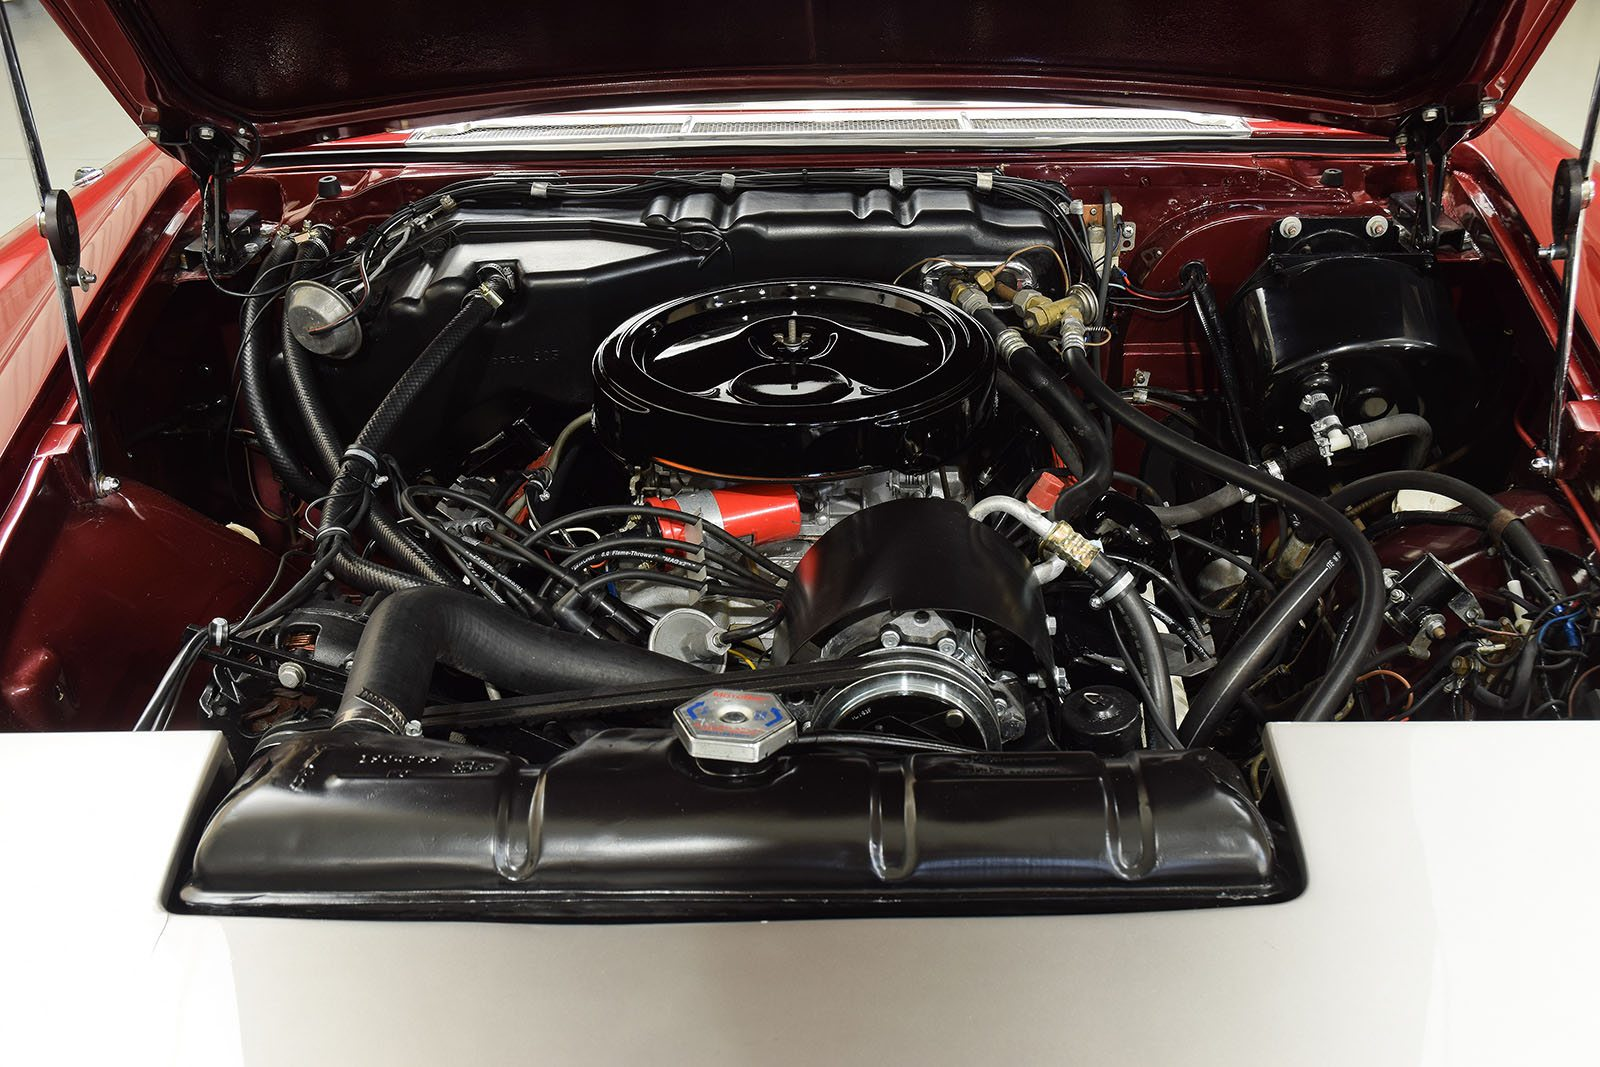 1963 Ghia L6.4 Coupe engine